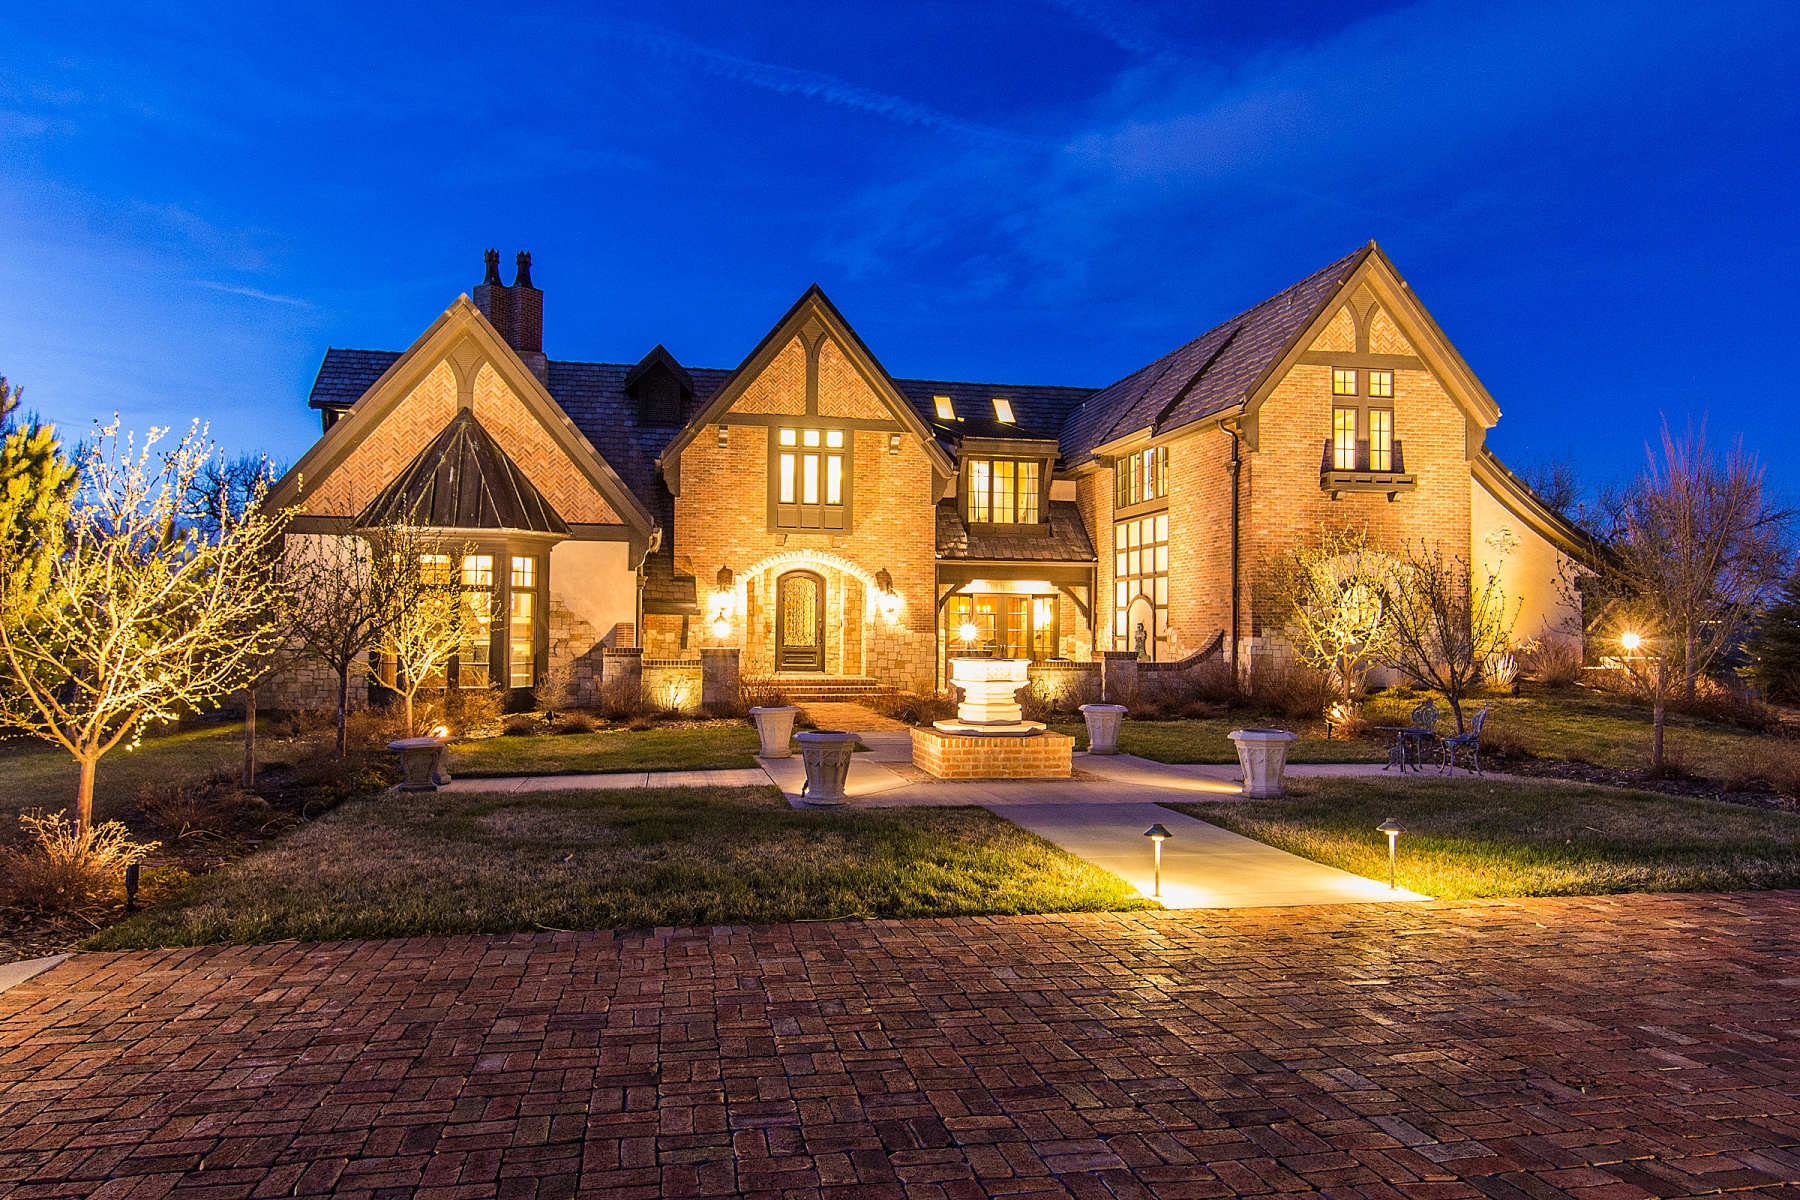 Single Family Home for Active at Magnificent English Tudor with brilliant architecture backing to Highline Canal 4251 Preserve Parkway North Greenwood Village, Colorado 80121 United States